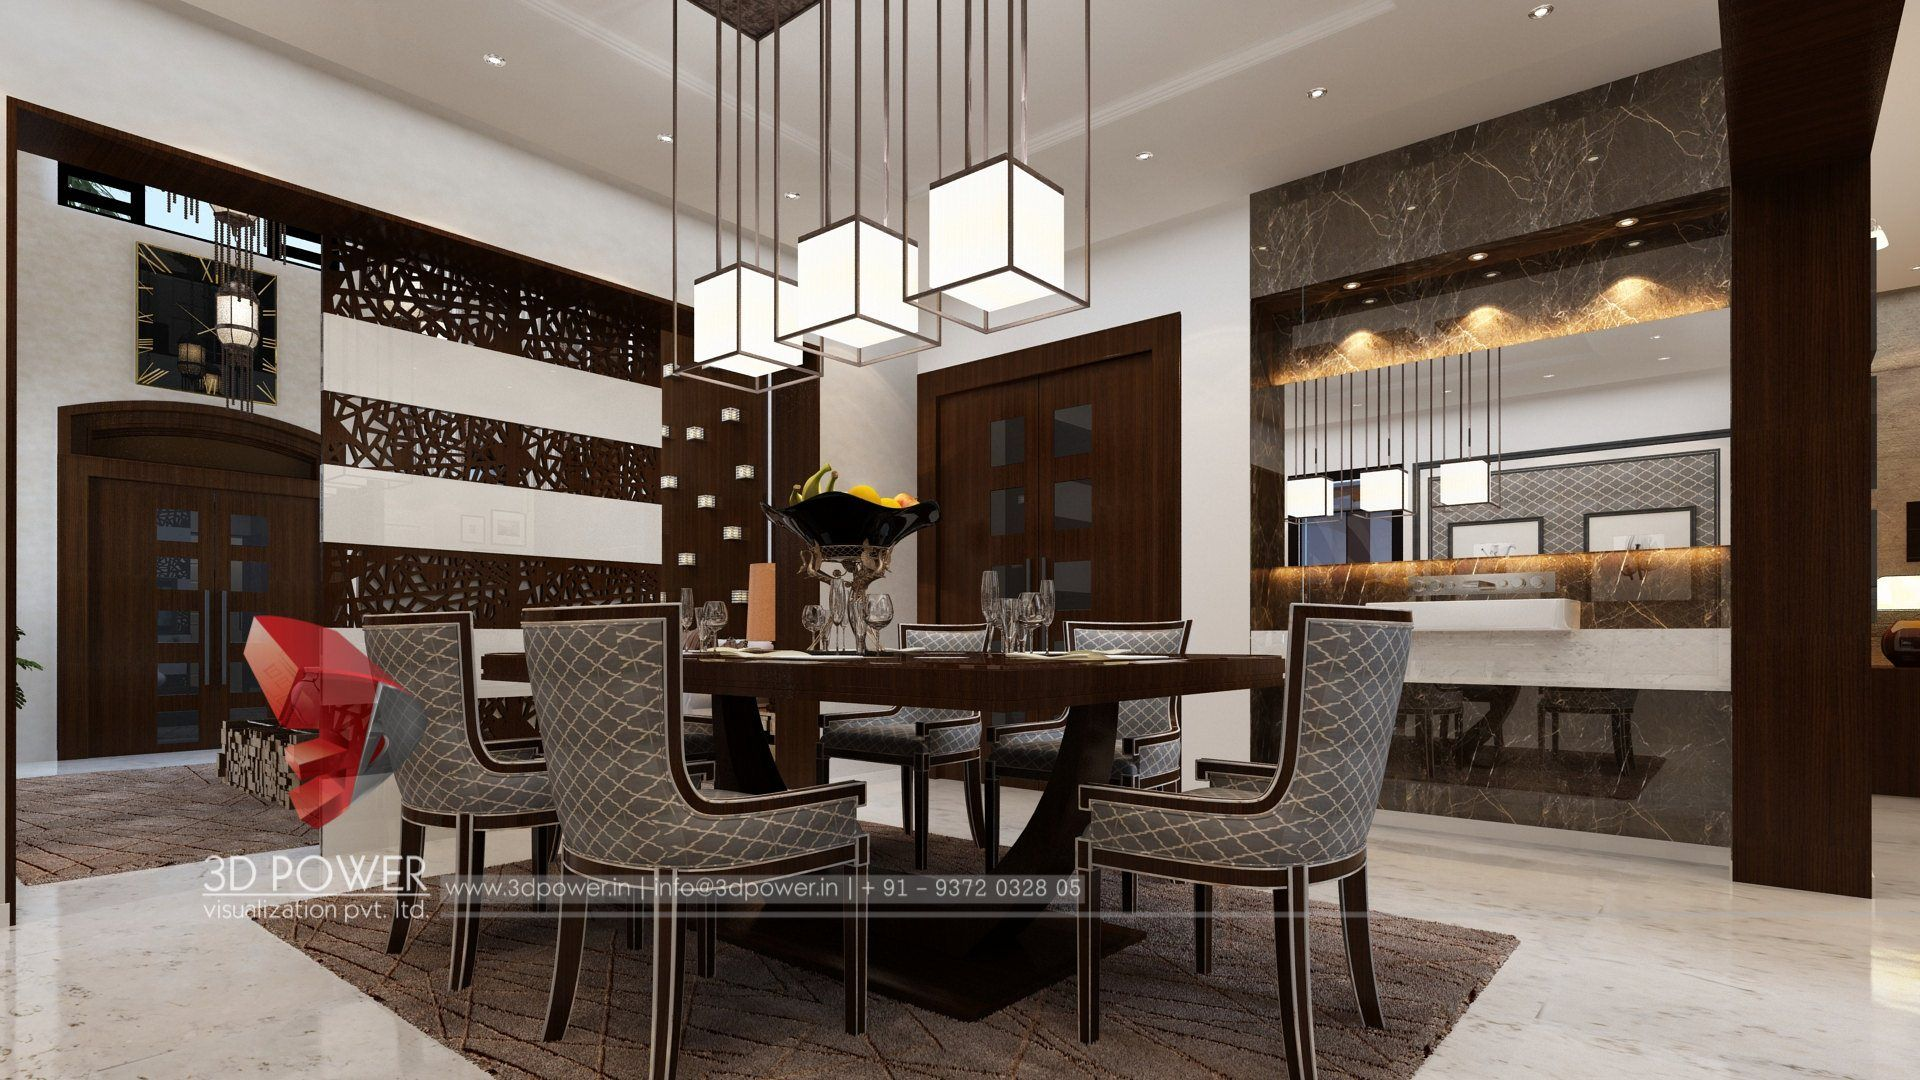 3d Visualization Of An Interior Of Dining Room Interior Design